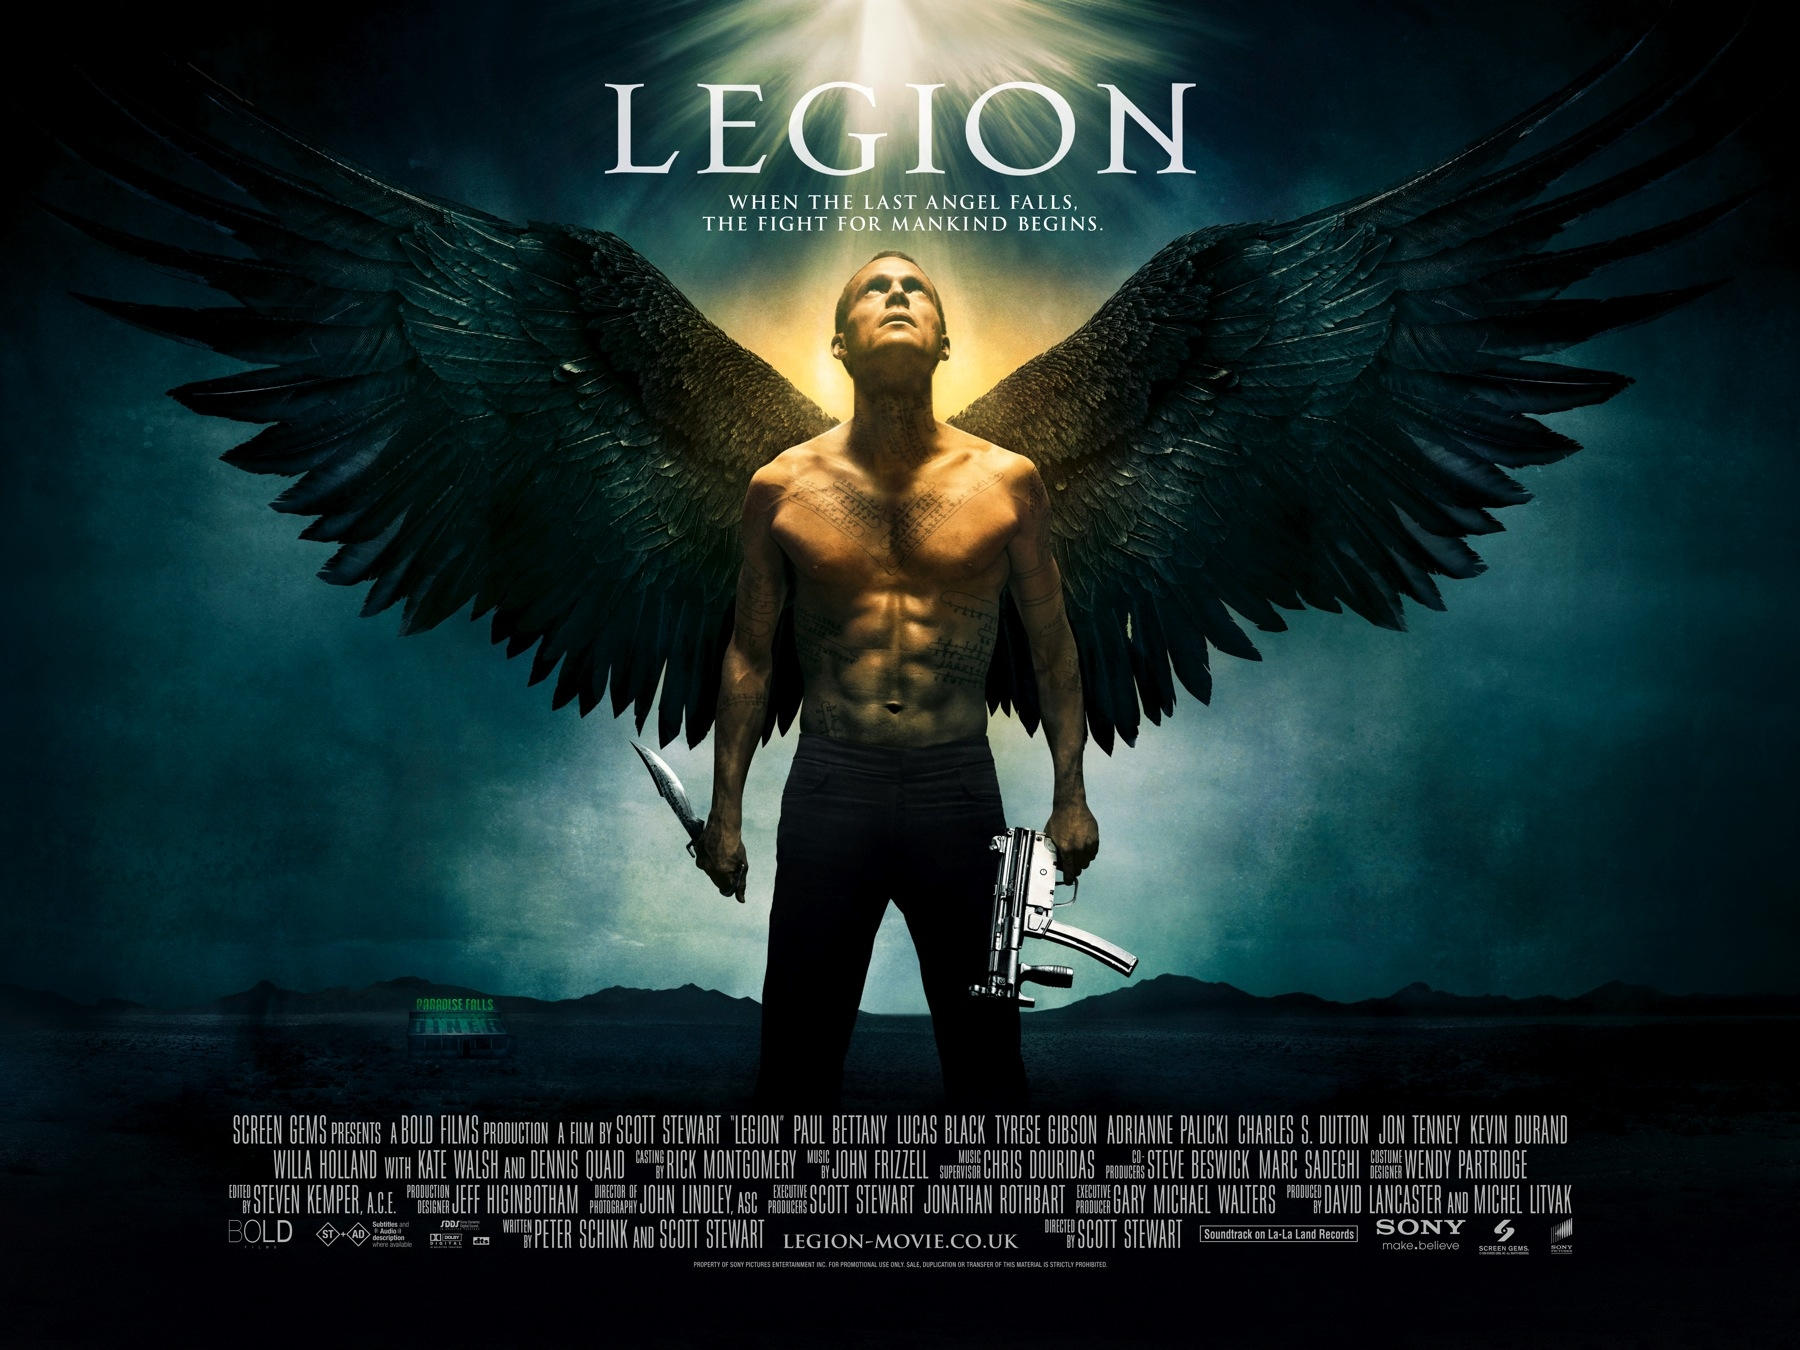 Watch Movie Legion For Free